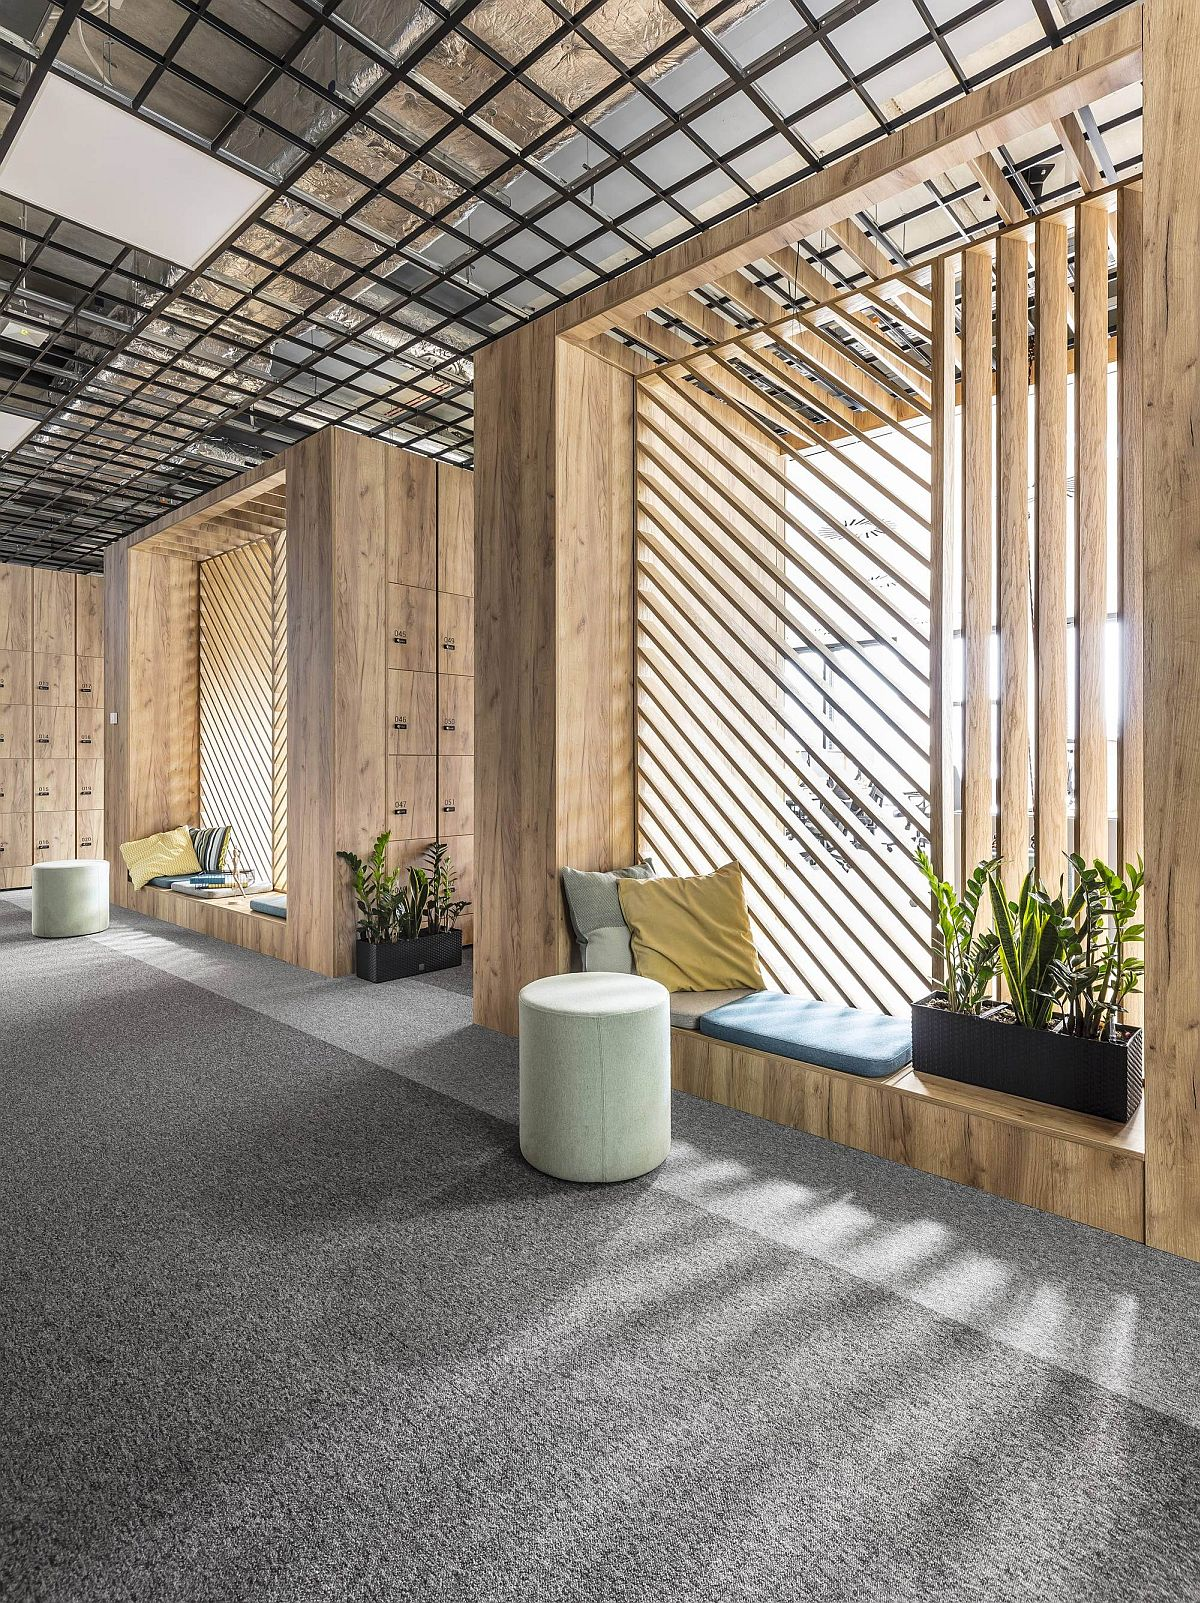 Relaxation nooks inside the office with ample lighting